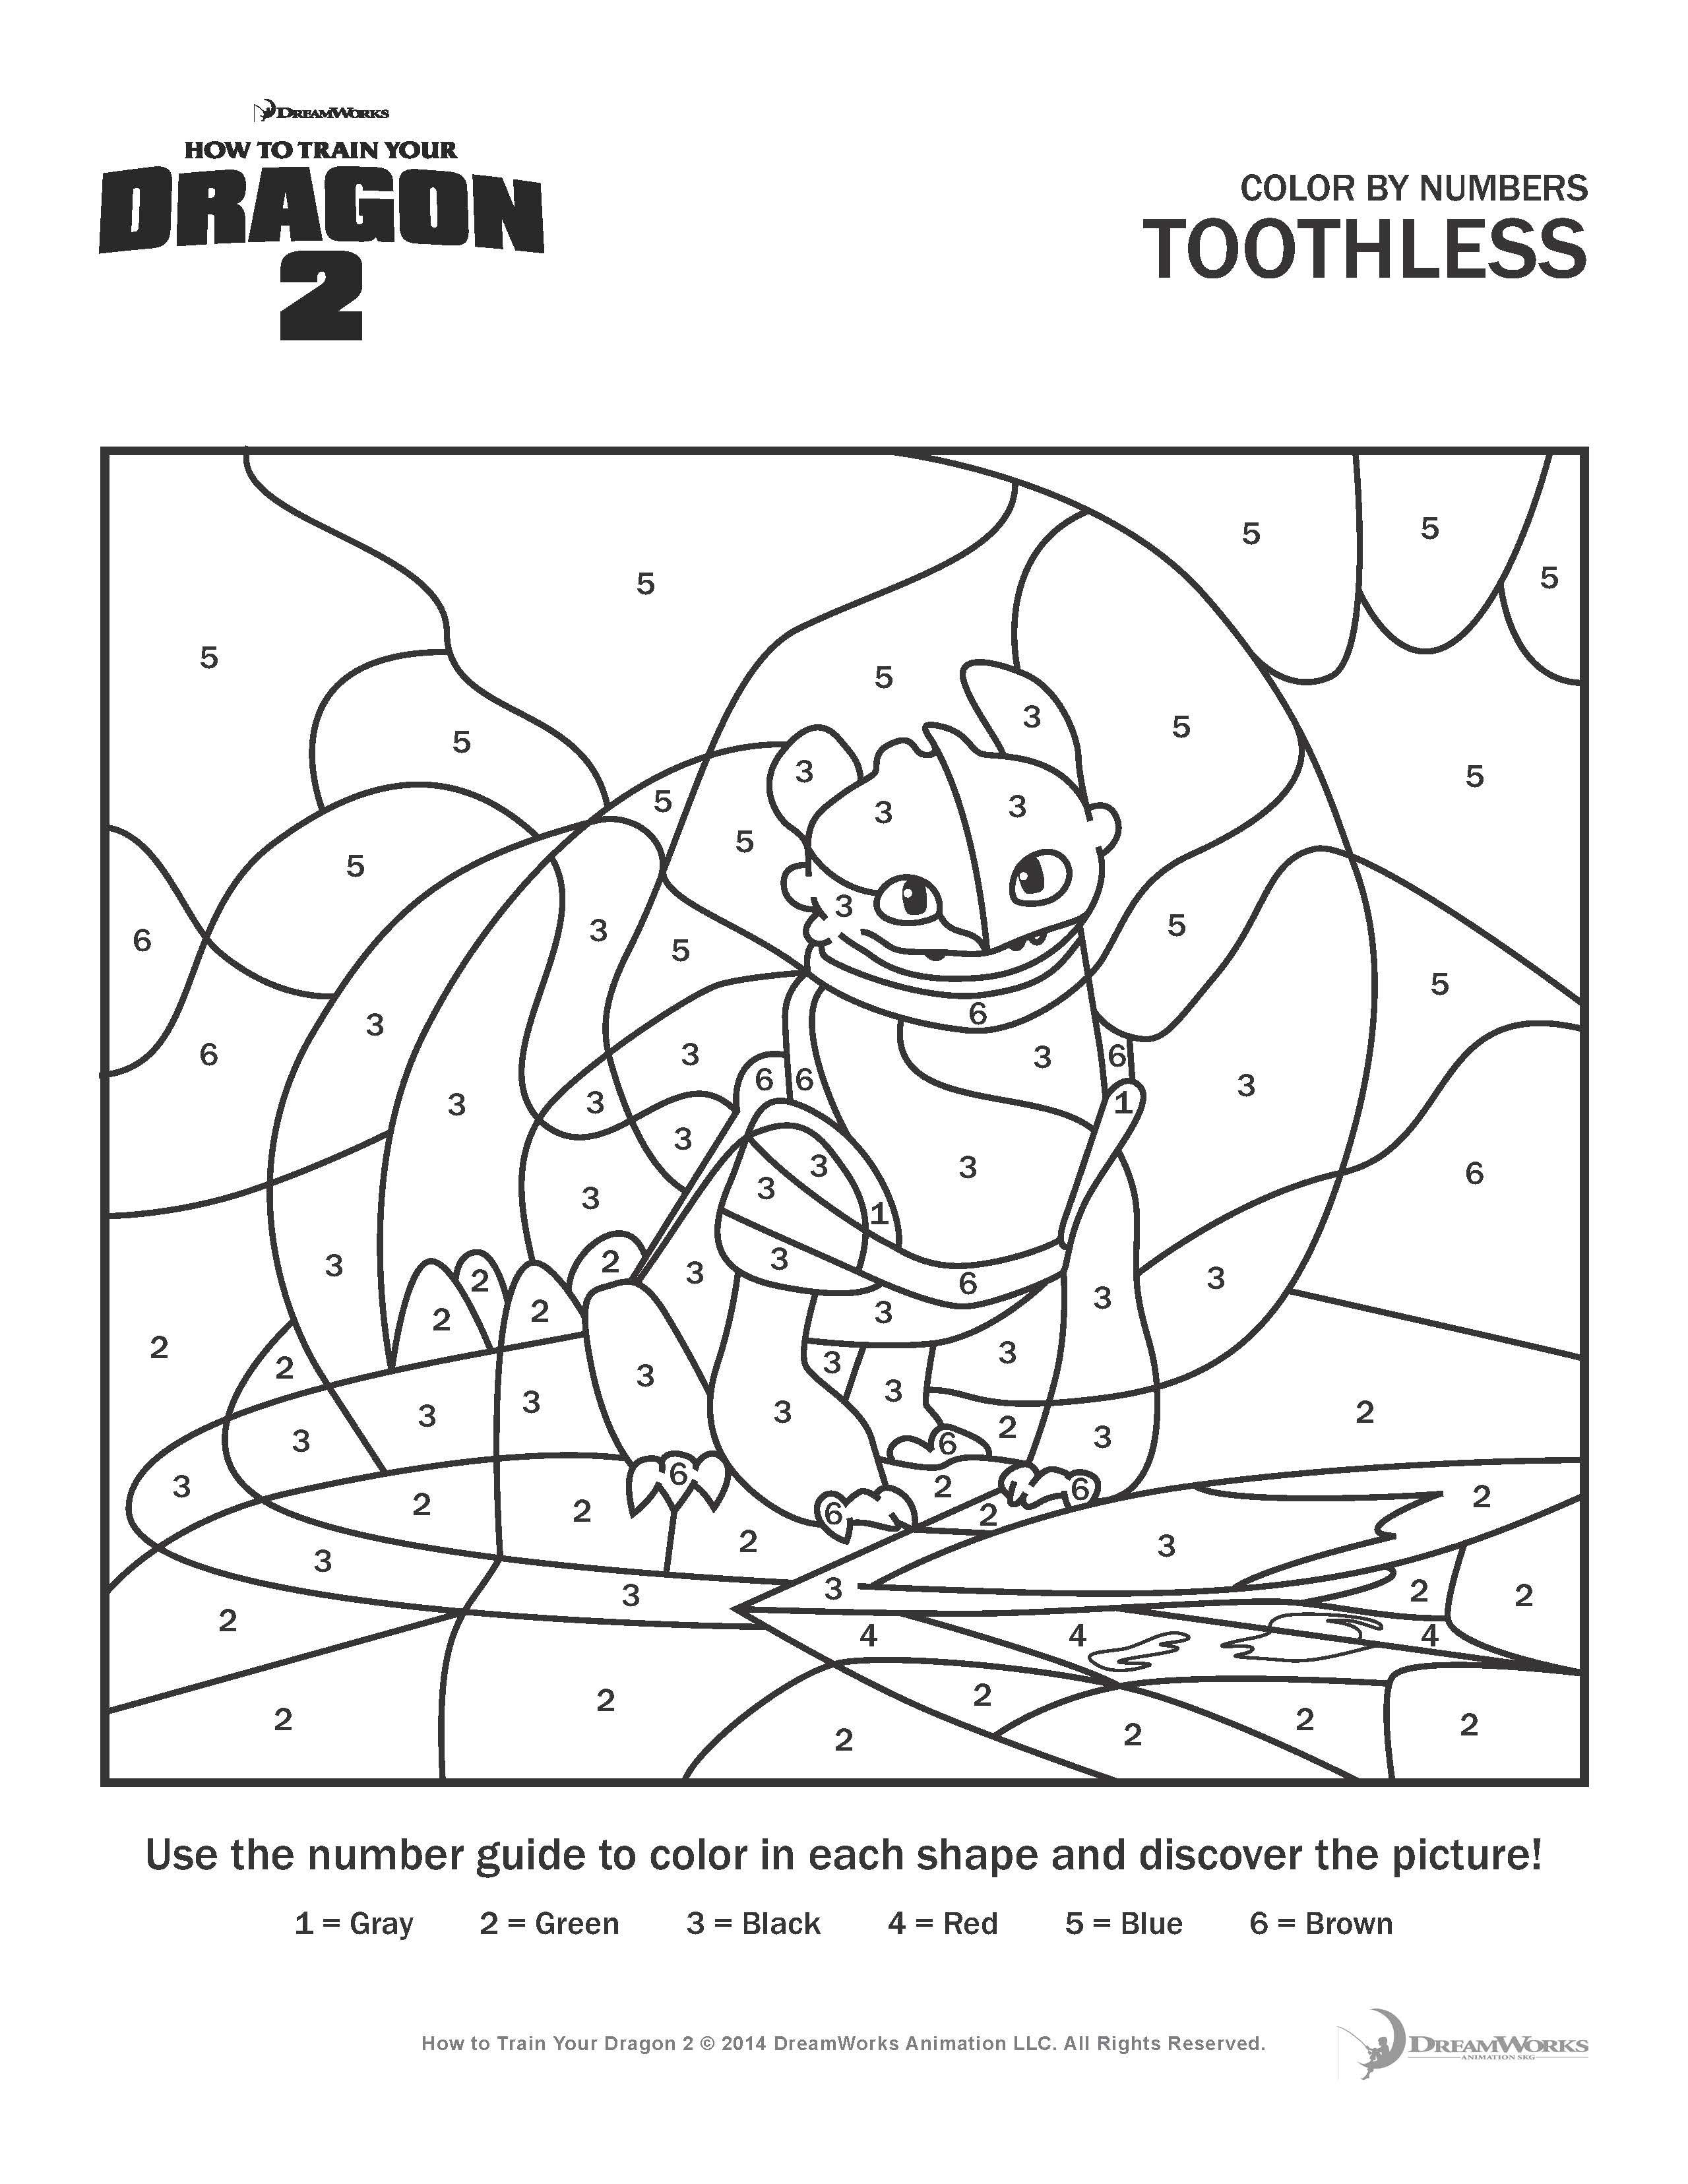 Dragon Color Worksheet Printable Worksheets And Activities For Teachers Parents Tutors And Homeschool Families